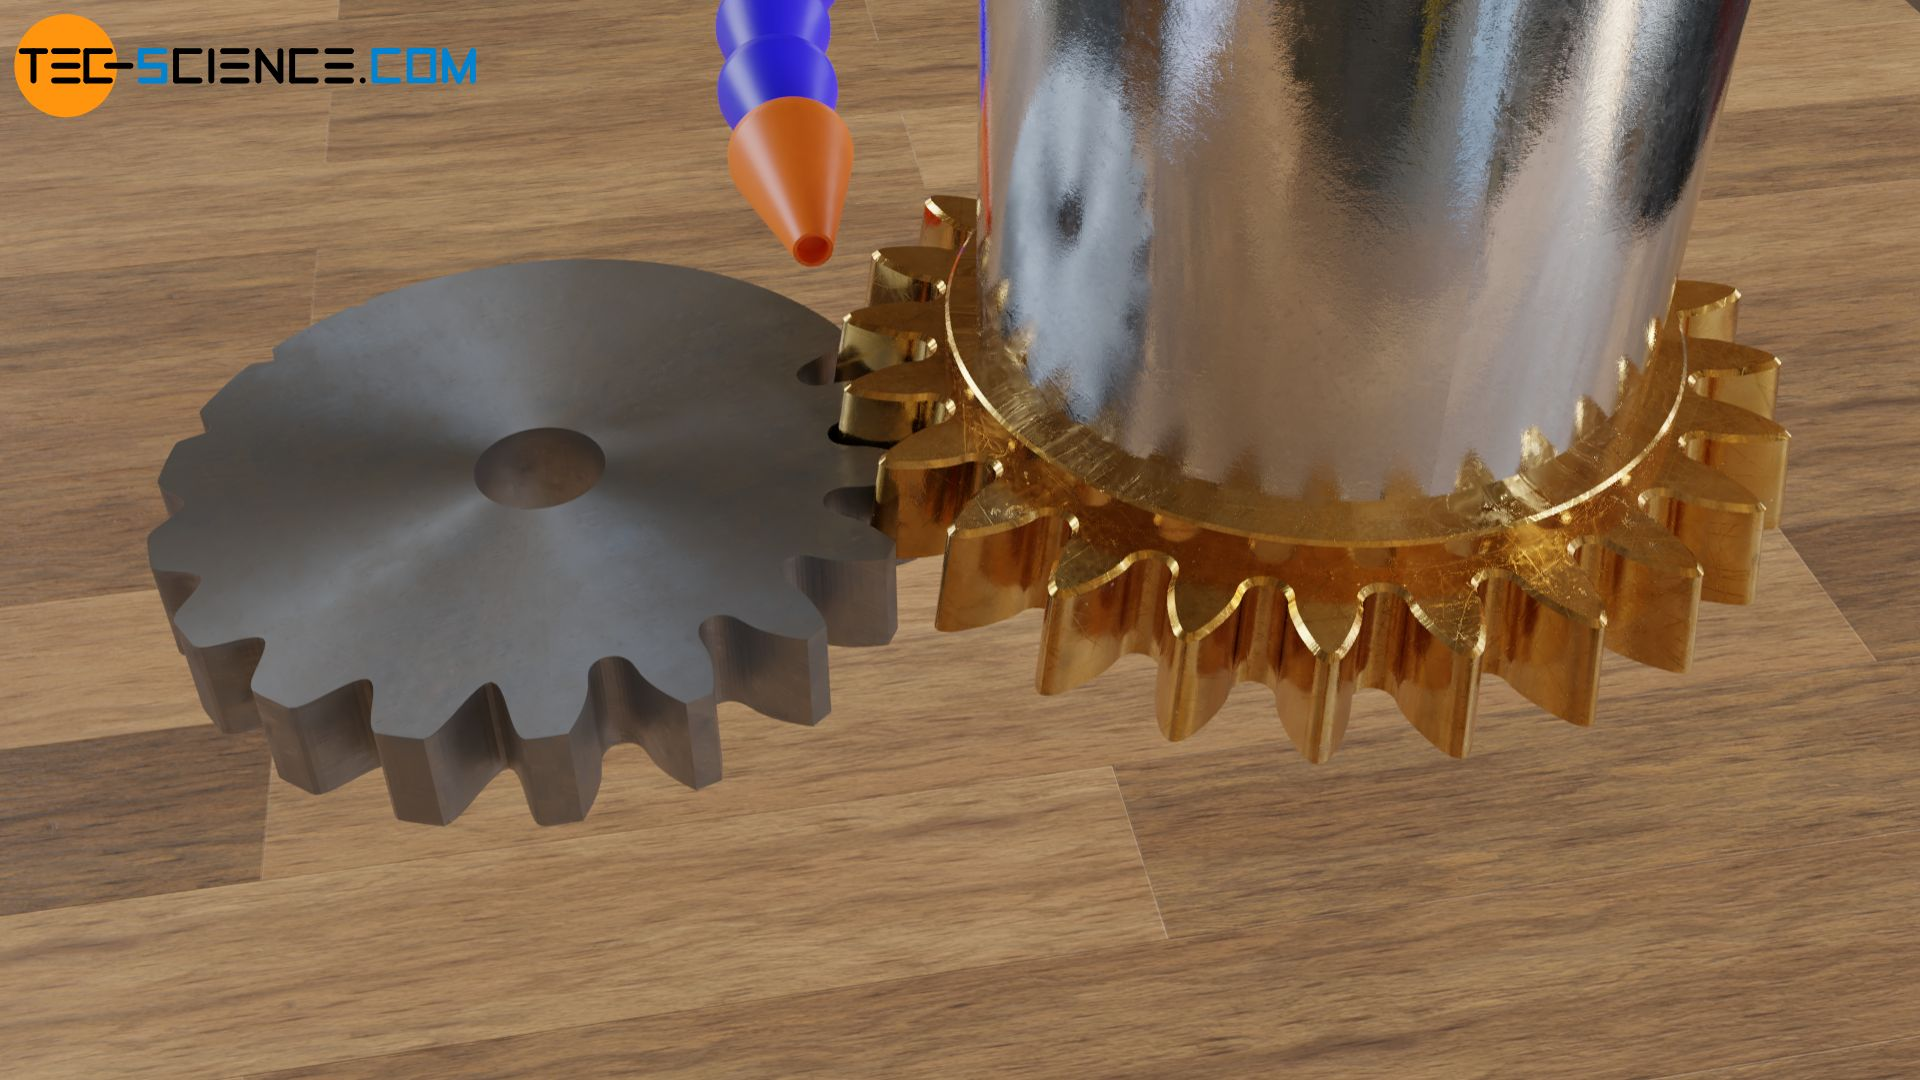 Shaping of a gear